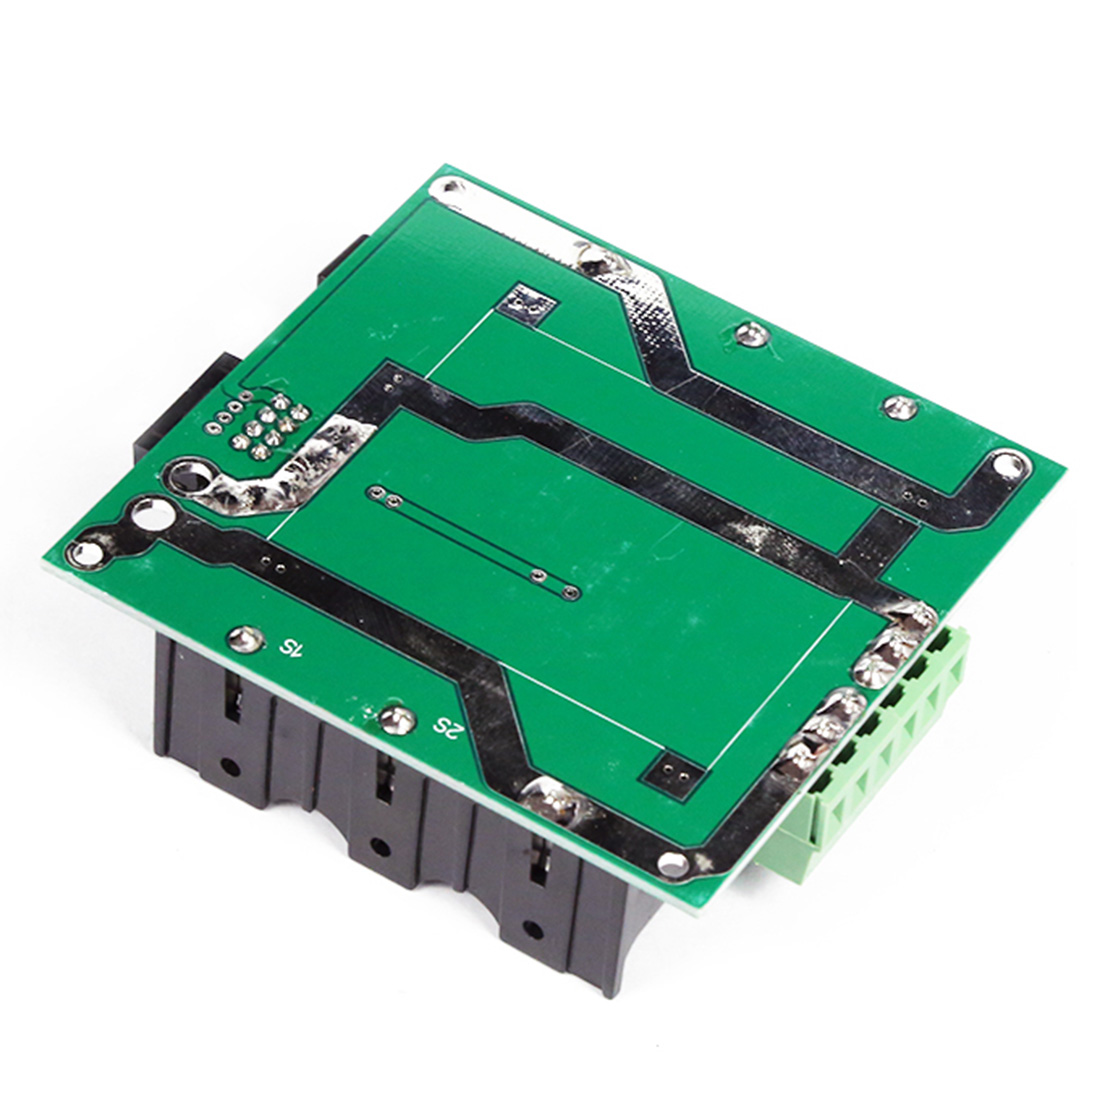 18650 Battery Box 3S Battery Pack Bms Battery Holder Without Protective Board Diy Programming Accessories